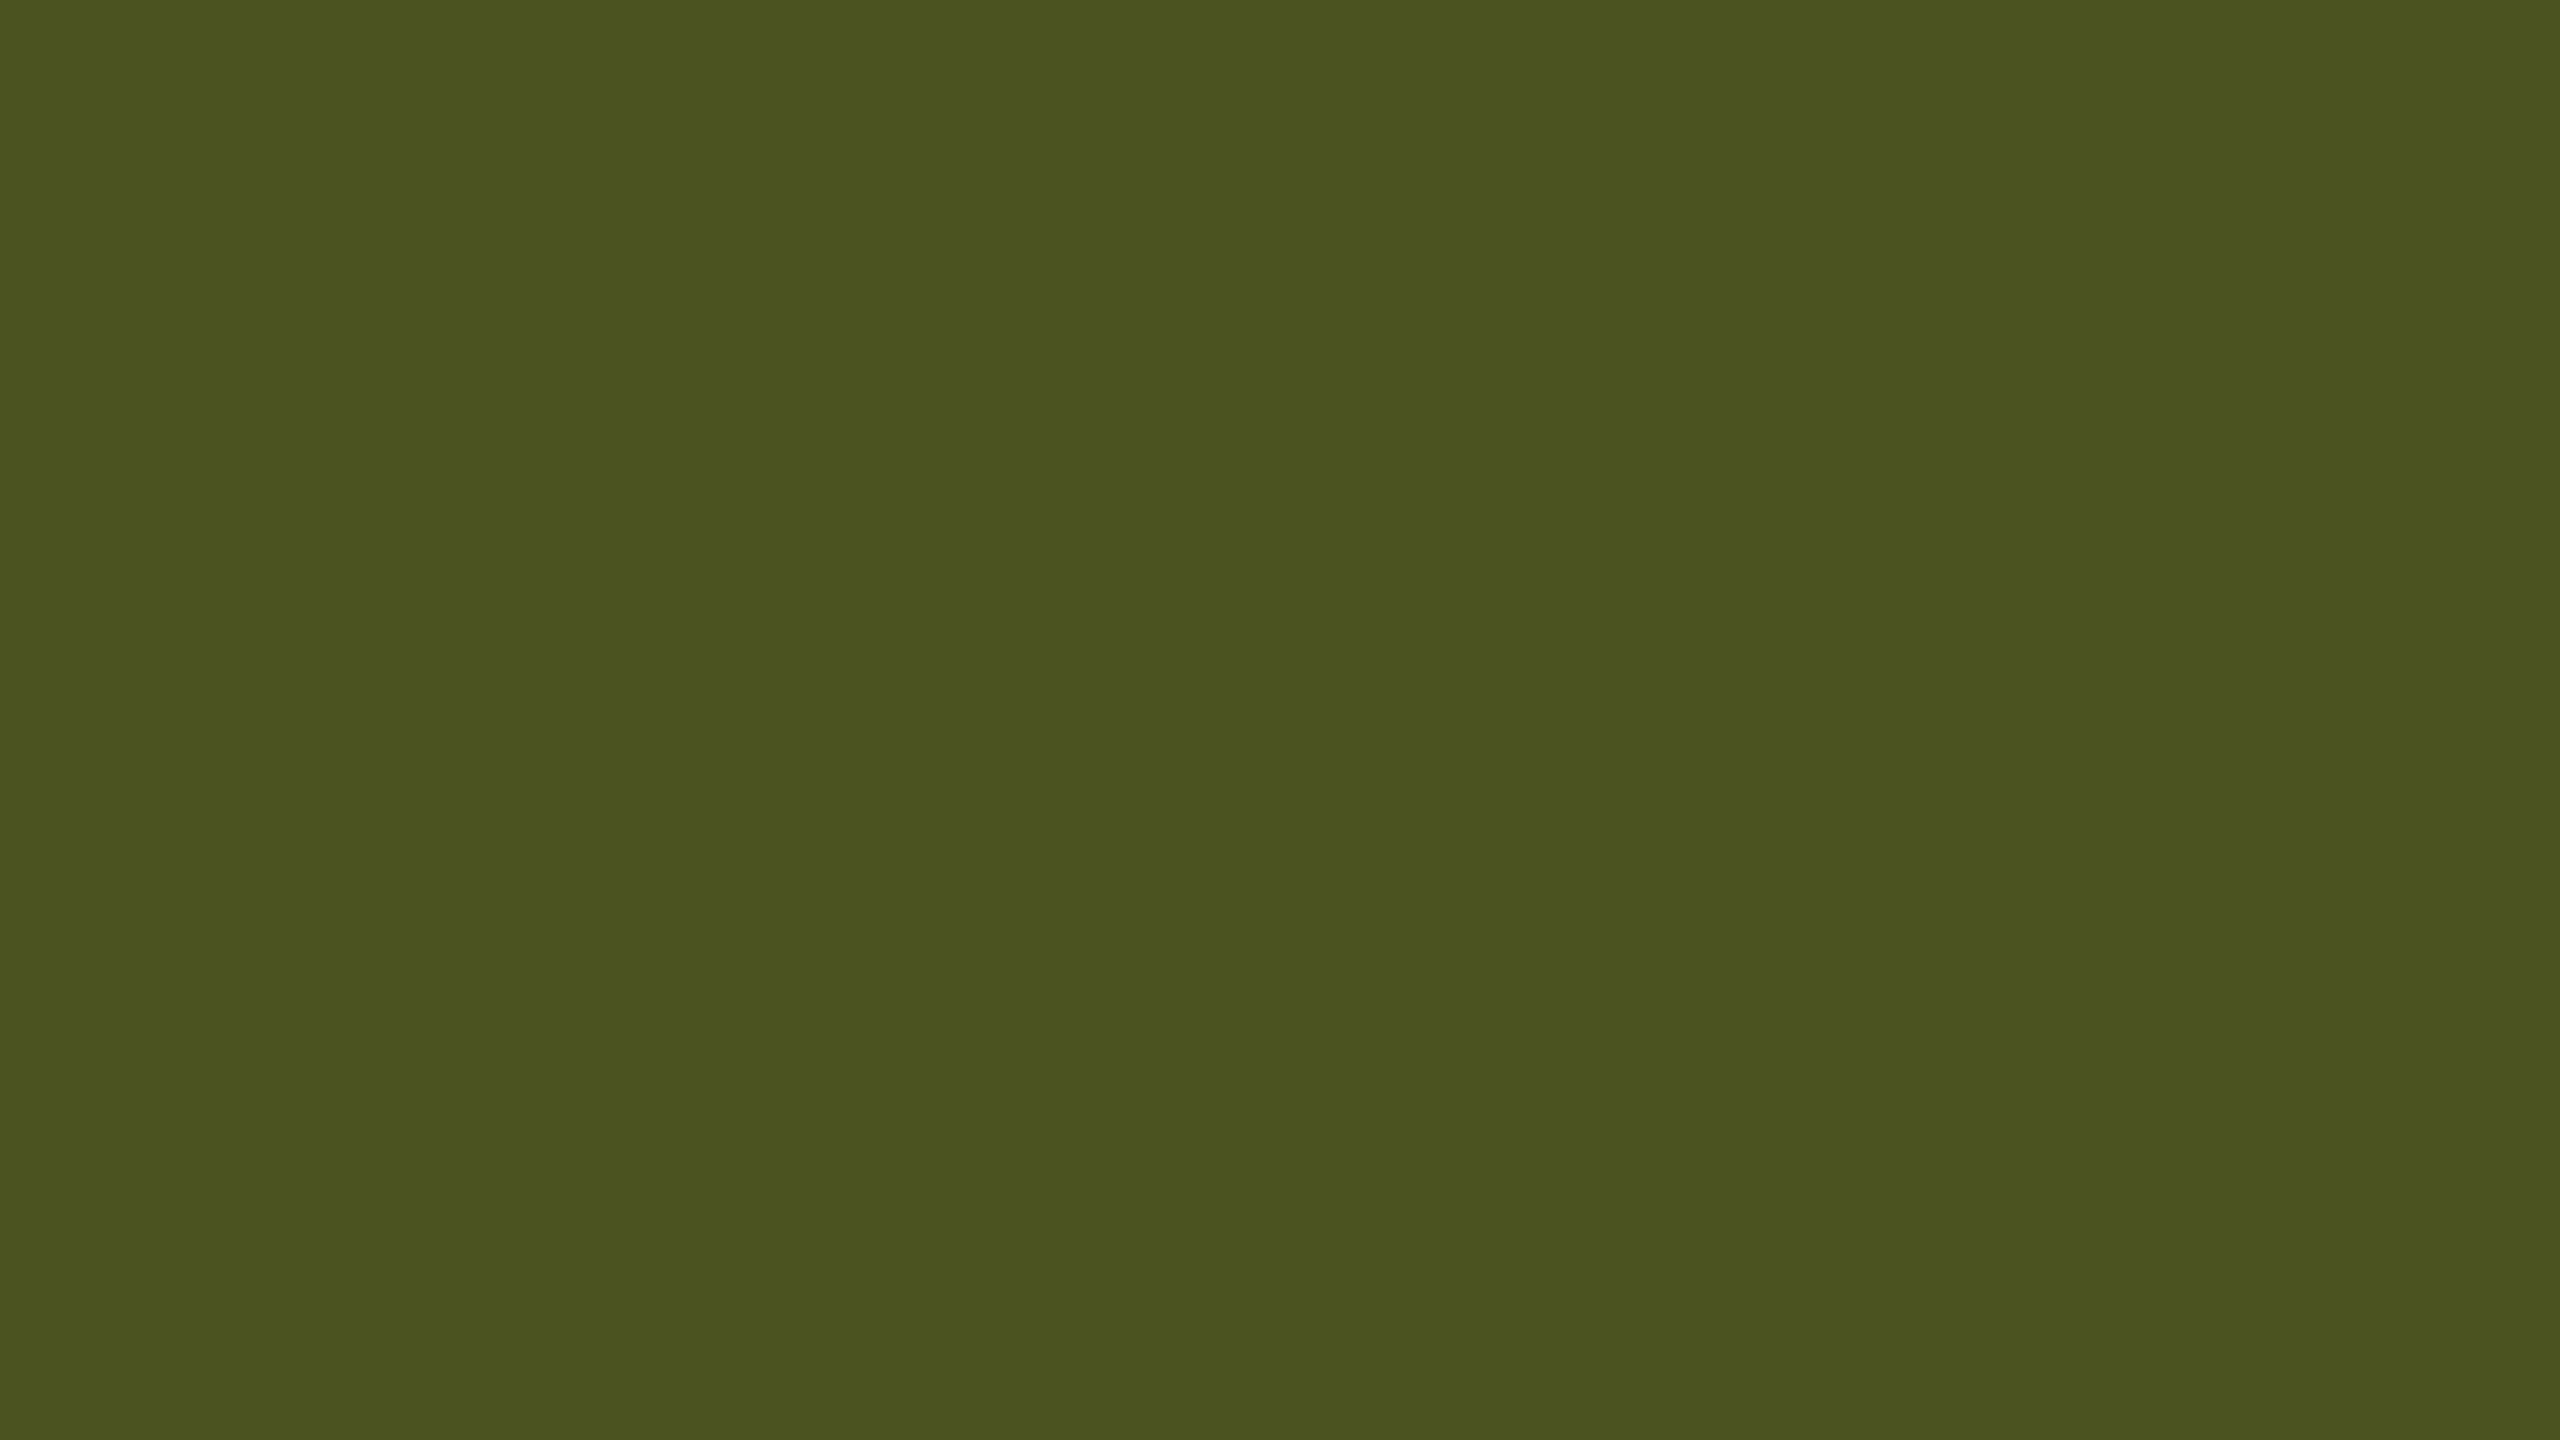 2560x1440 Army Green Solid Color Background